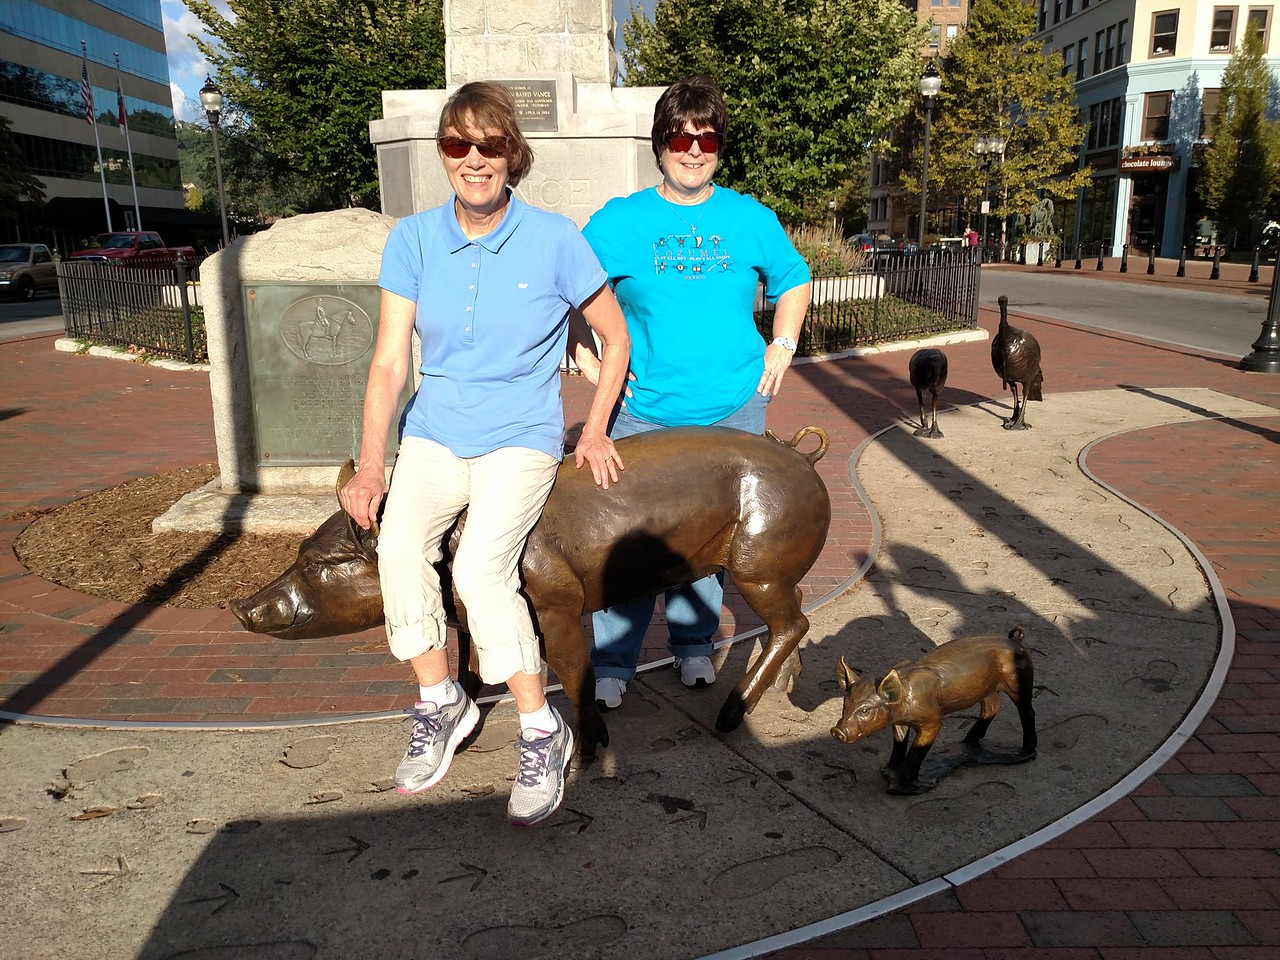 Fran & Joyce enjoy the pigs and turkeys in Pack Square